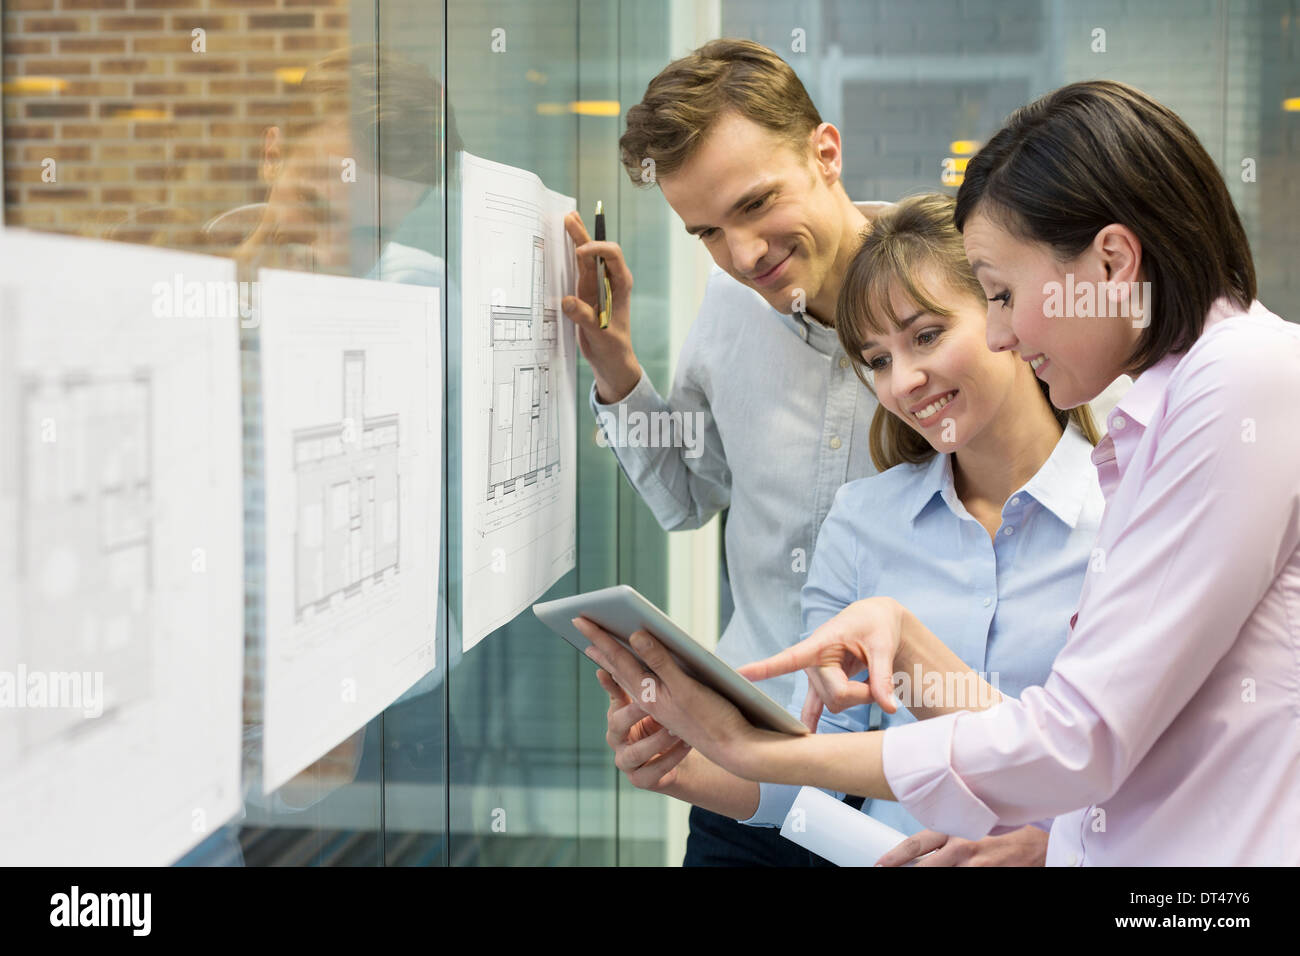 Business man woman plans meeting colleagues tablet pc - Stock Image